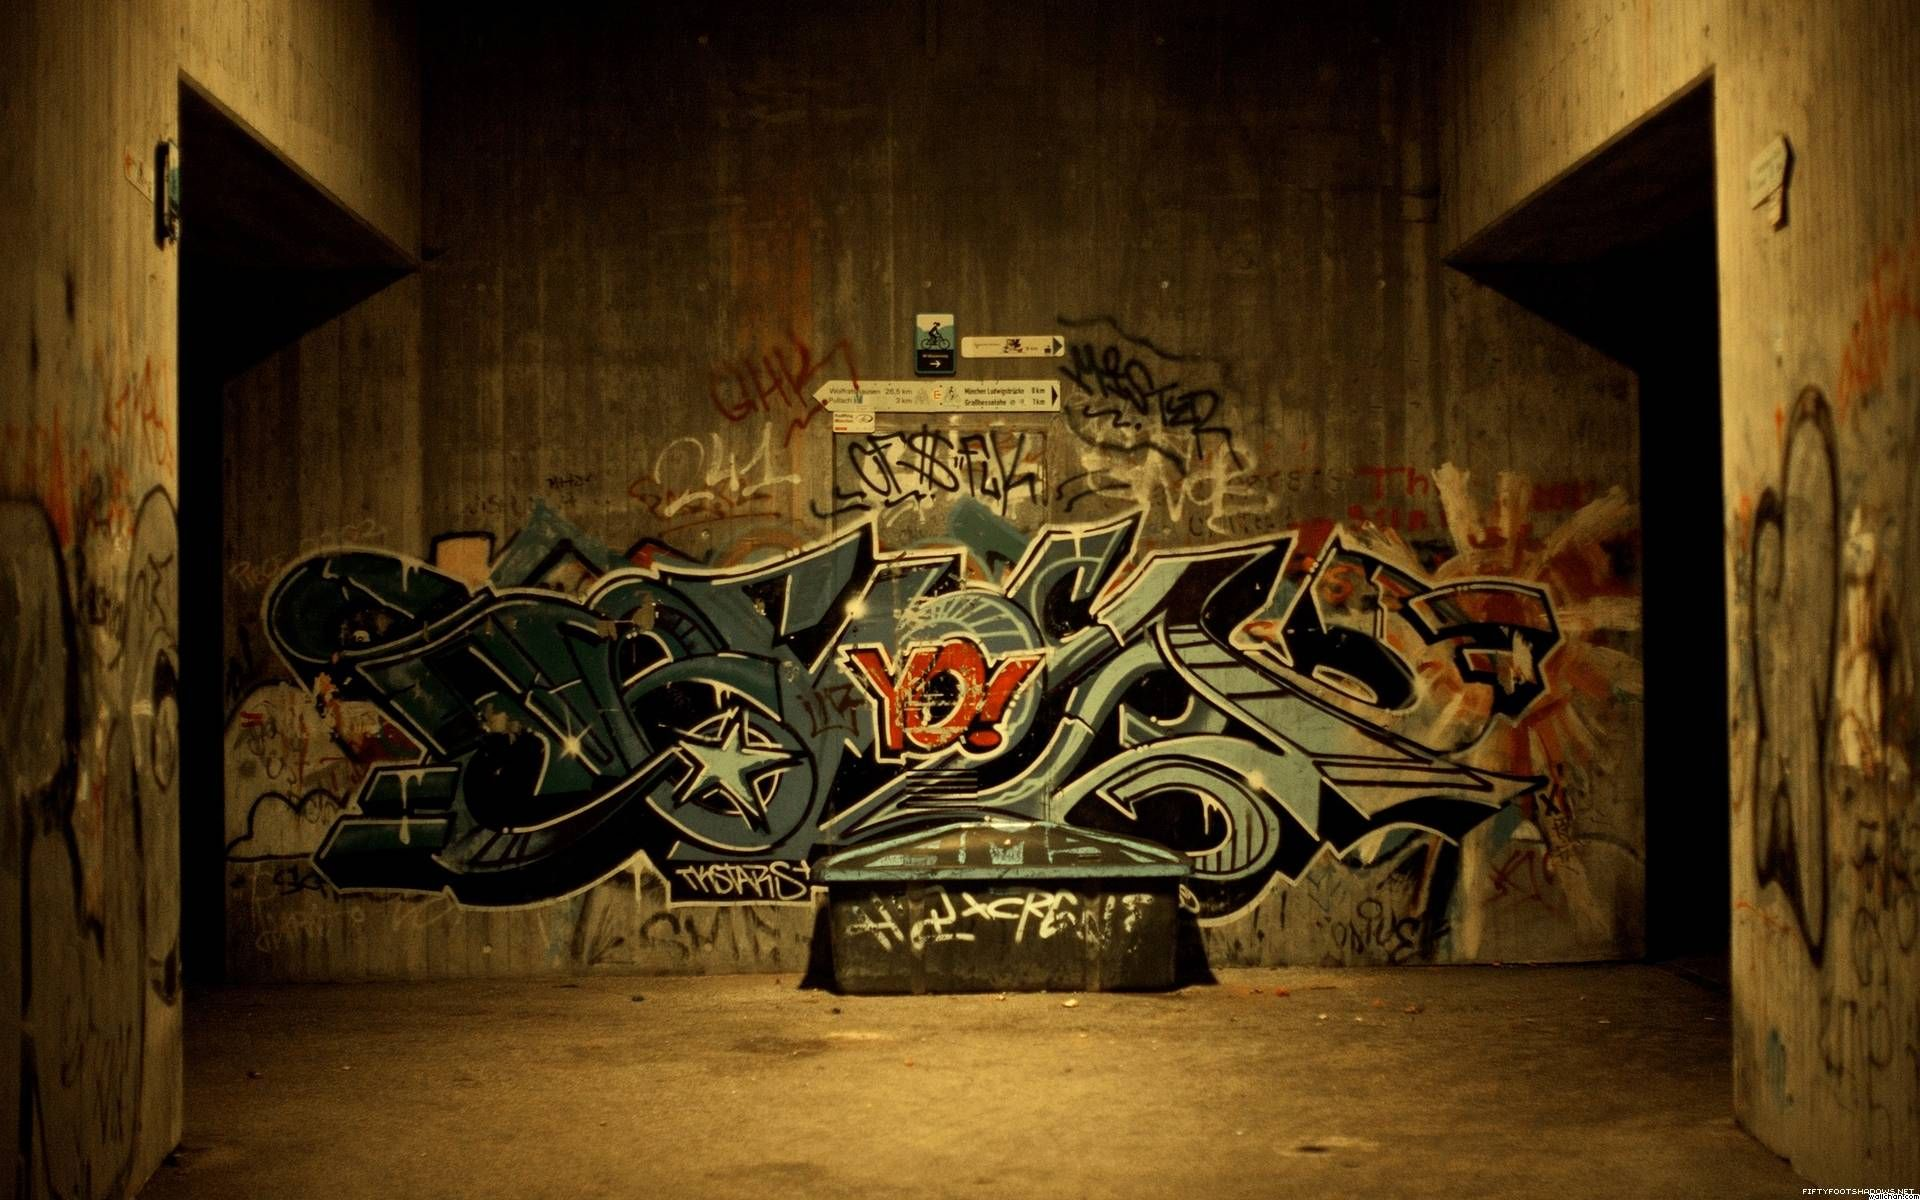 Hip Hop Graffiti Wallpaper Hd: Hip Hop Wallpapers Wallpaper